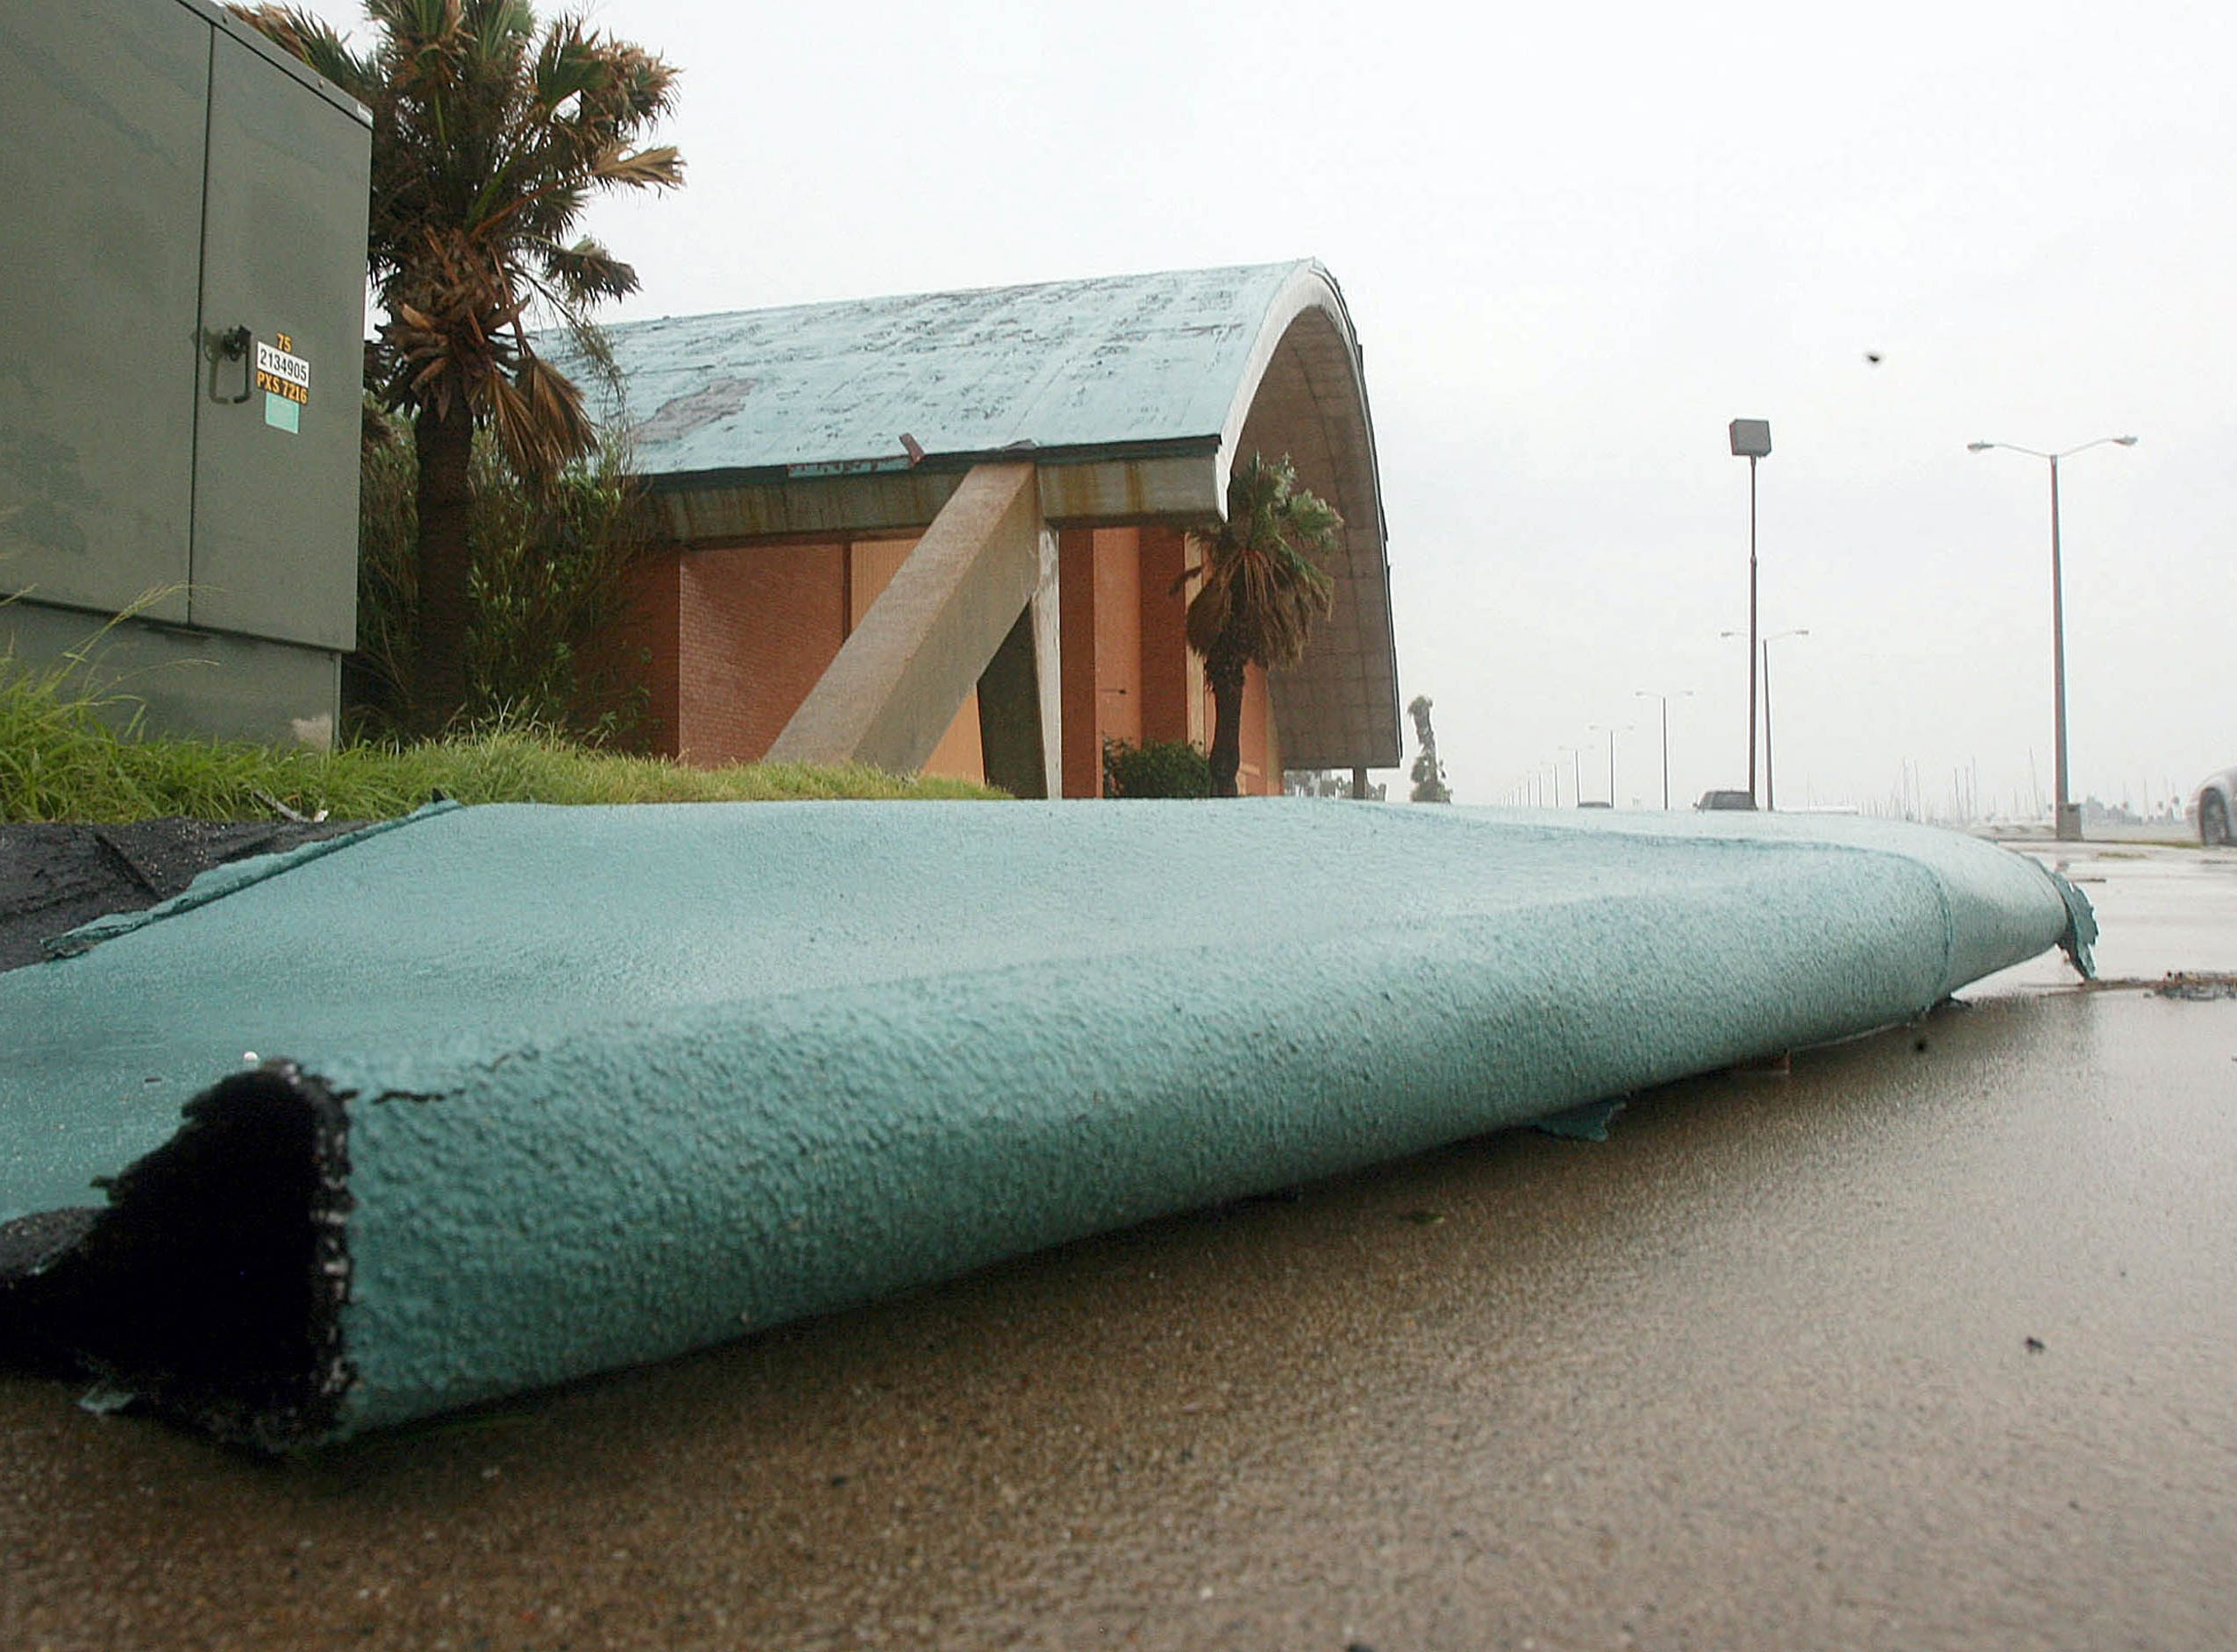 Pieces of the Memorial Coliseum lay about the sidewalk along Shoreline Boulevard after being ripped from the roof of the coliseum by high winds Thursday, July 24, 2008. The high winds were generated by Hurricane Dolly Wednesday, which was down graded to tropical storm.